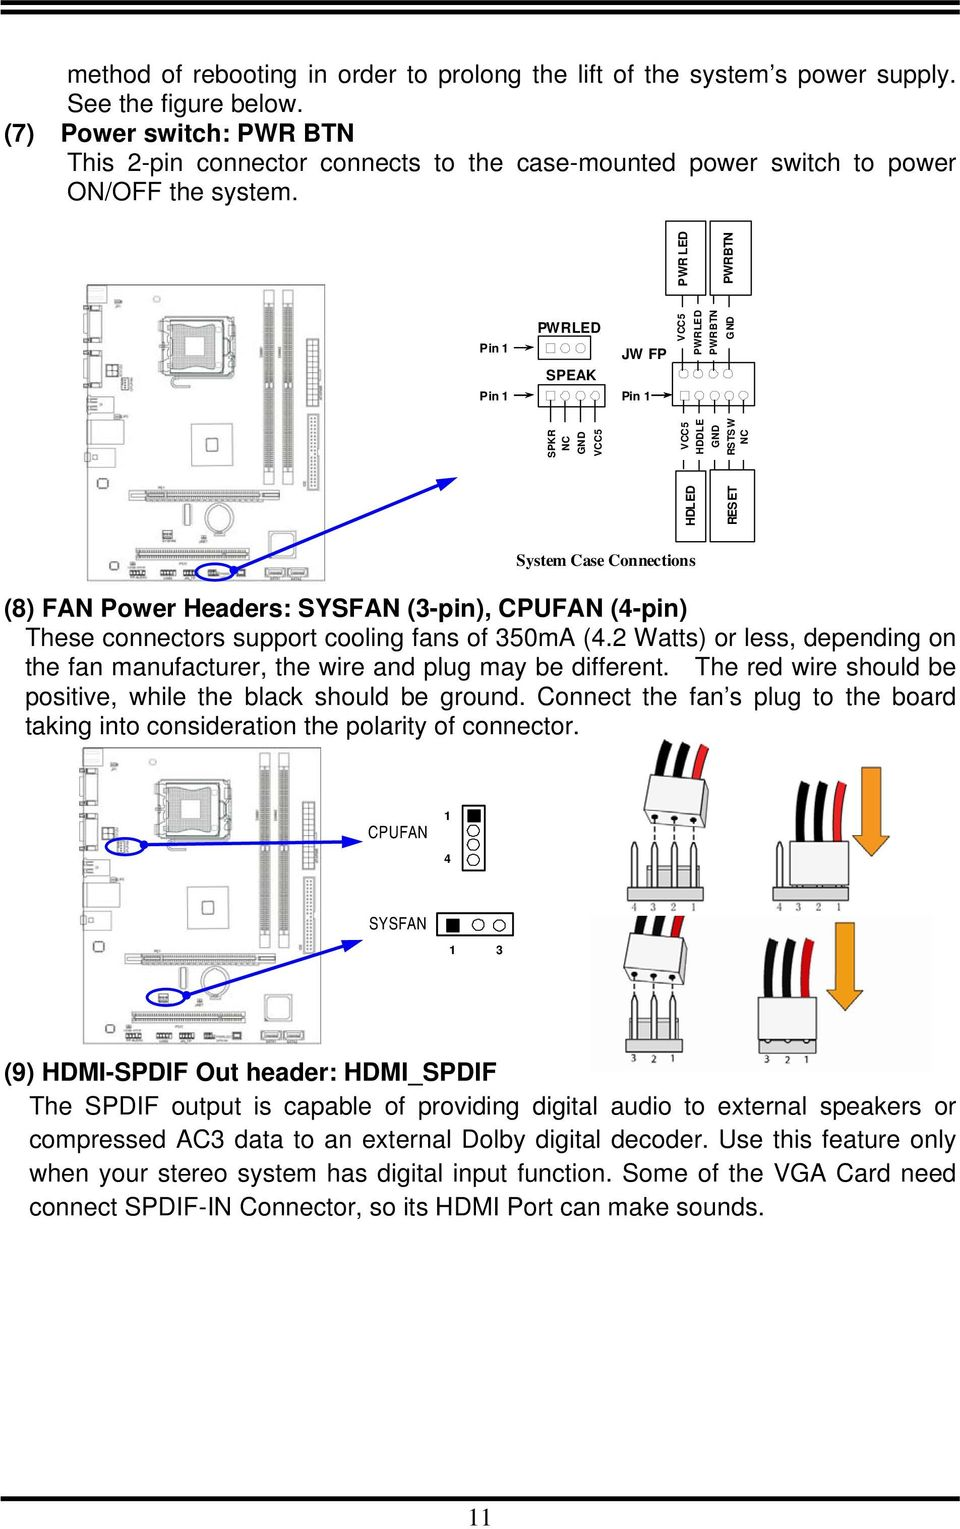 Users Manual Of Intel G31 Express Chipset Ich7 4 Pin Computer Fan Wire Diagram 1 Pwrled Speak Jw Fp Hdled Reset Spkr Nc Gnd Vcc5